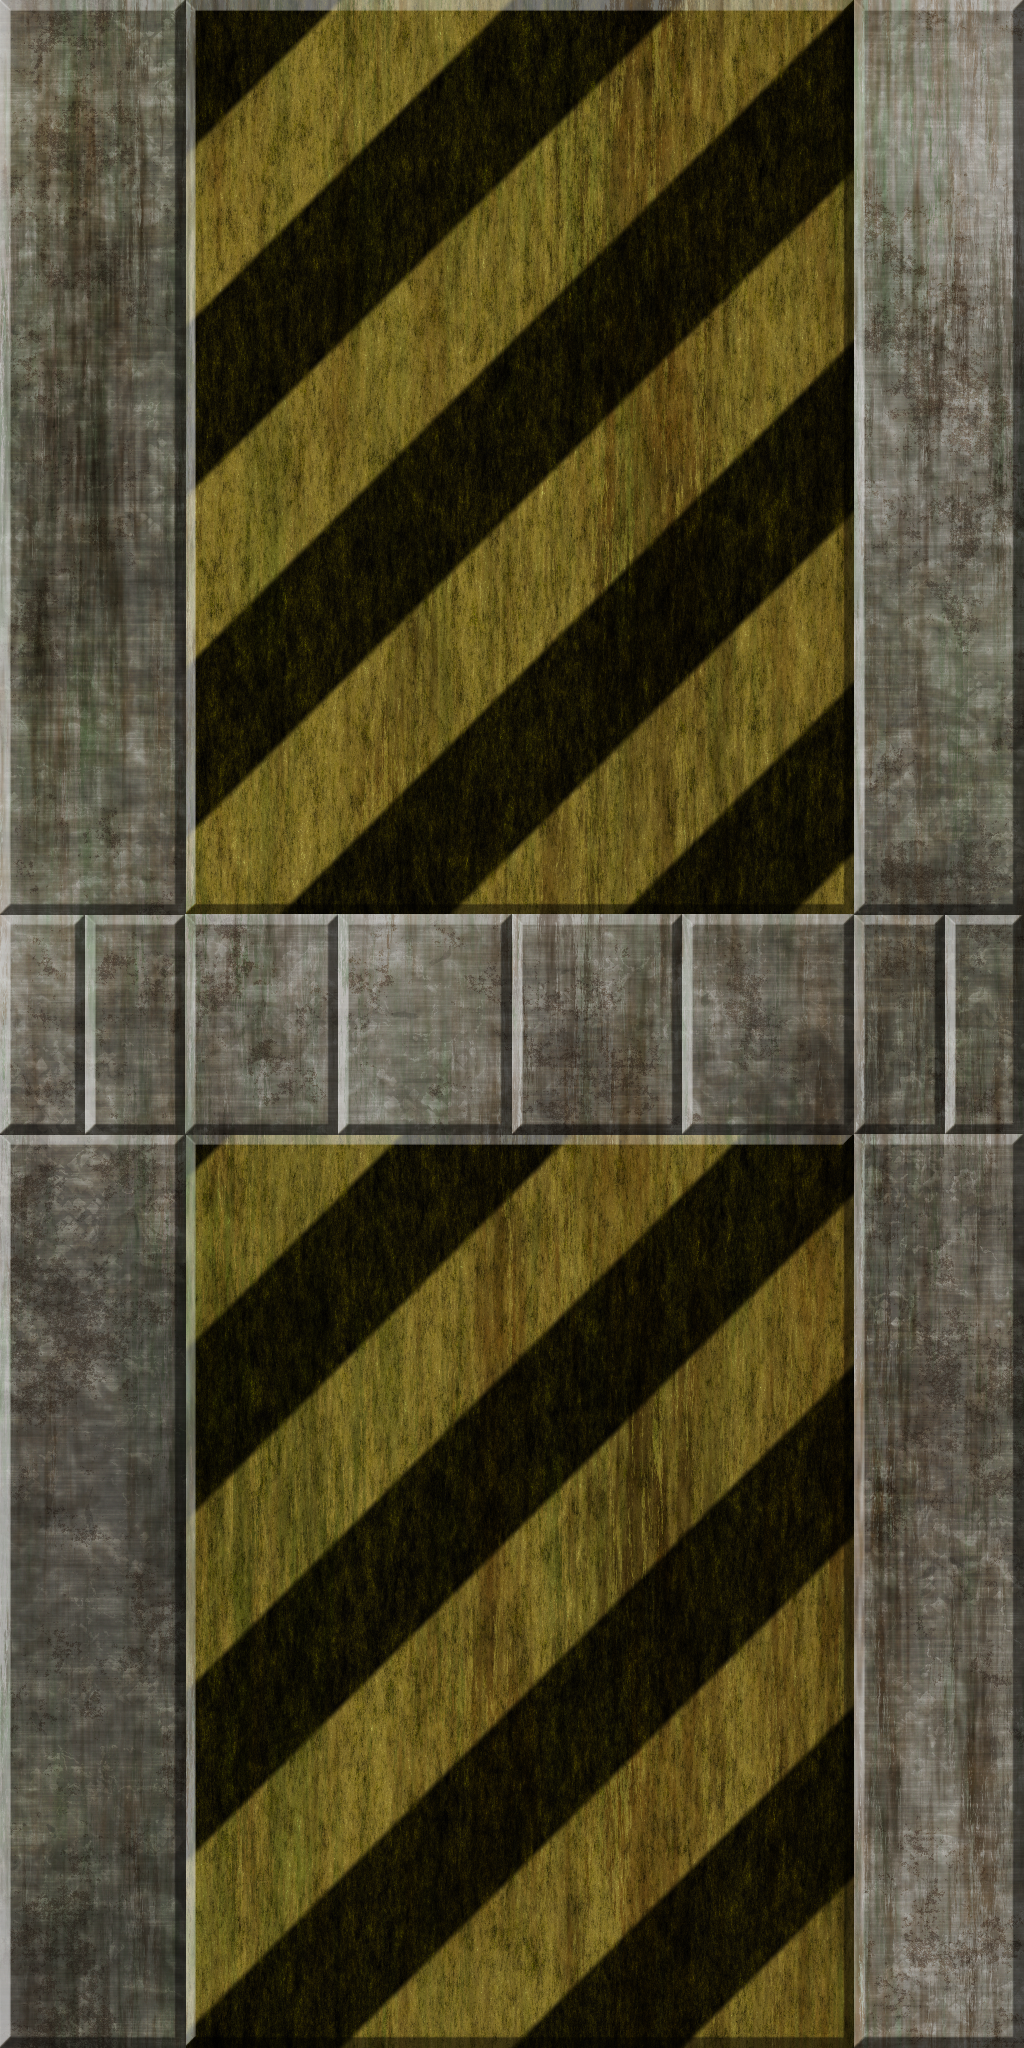 Cement Wall 8 Remake by Hoover1979